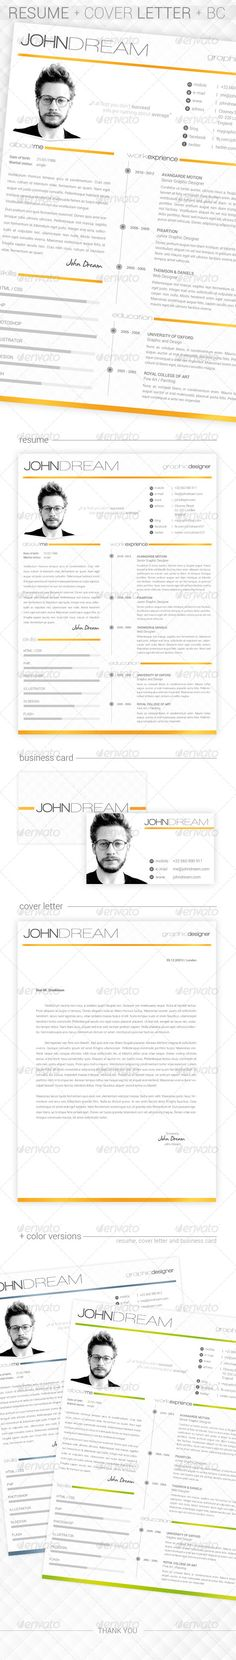 Professional Easy Resume\/CV Resume cv, Fonts and Organizing - resume paper size